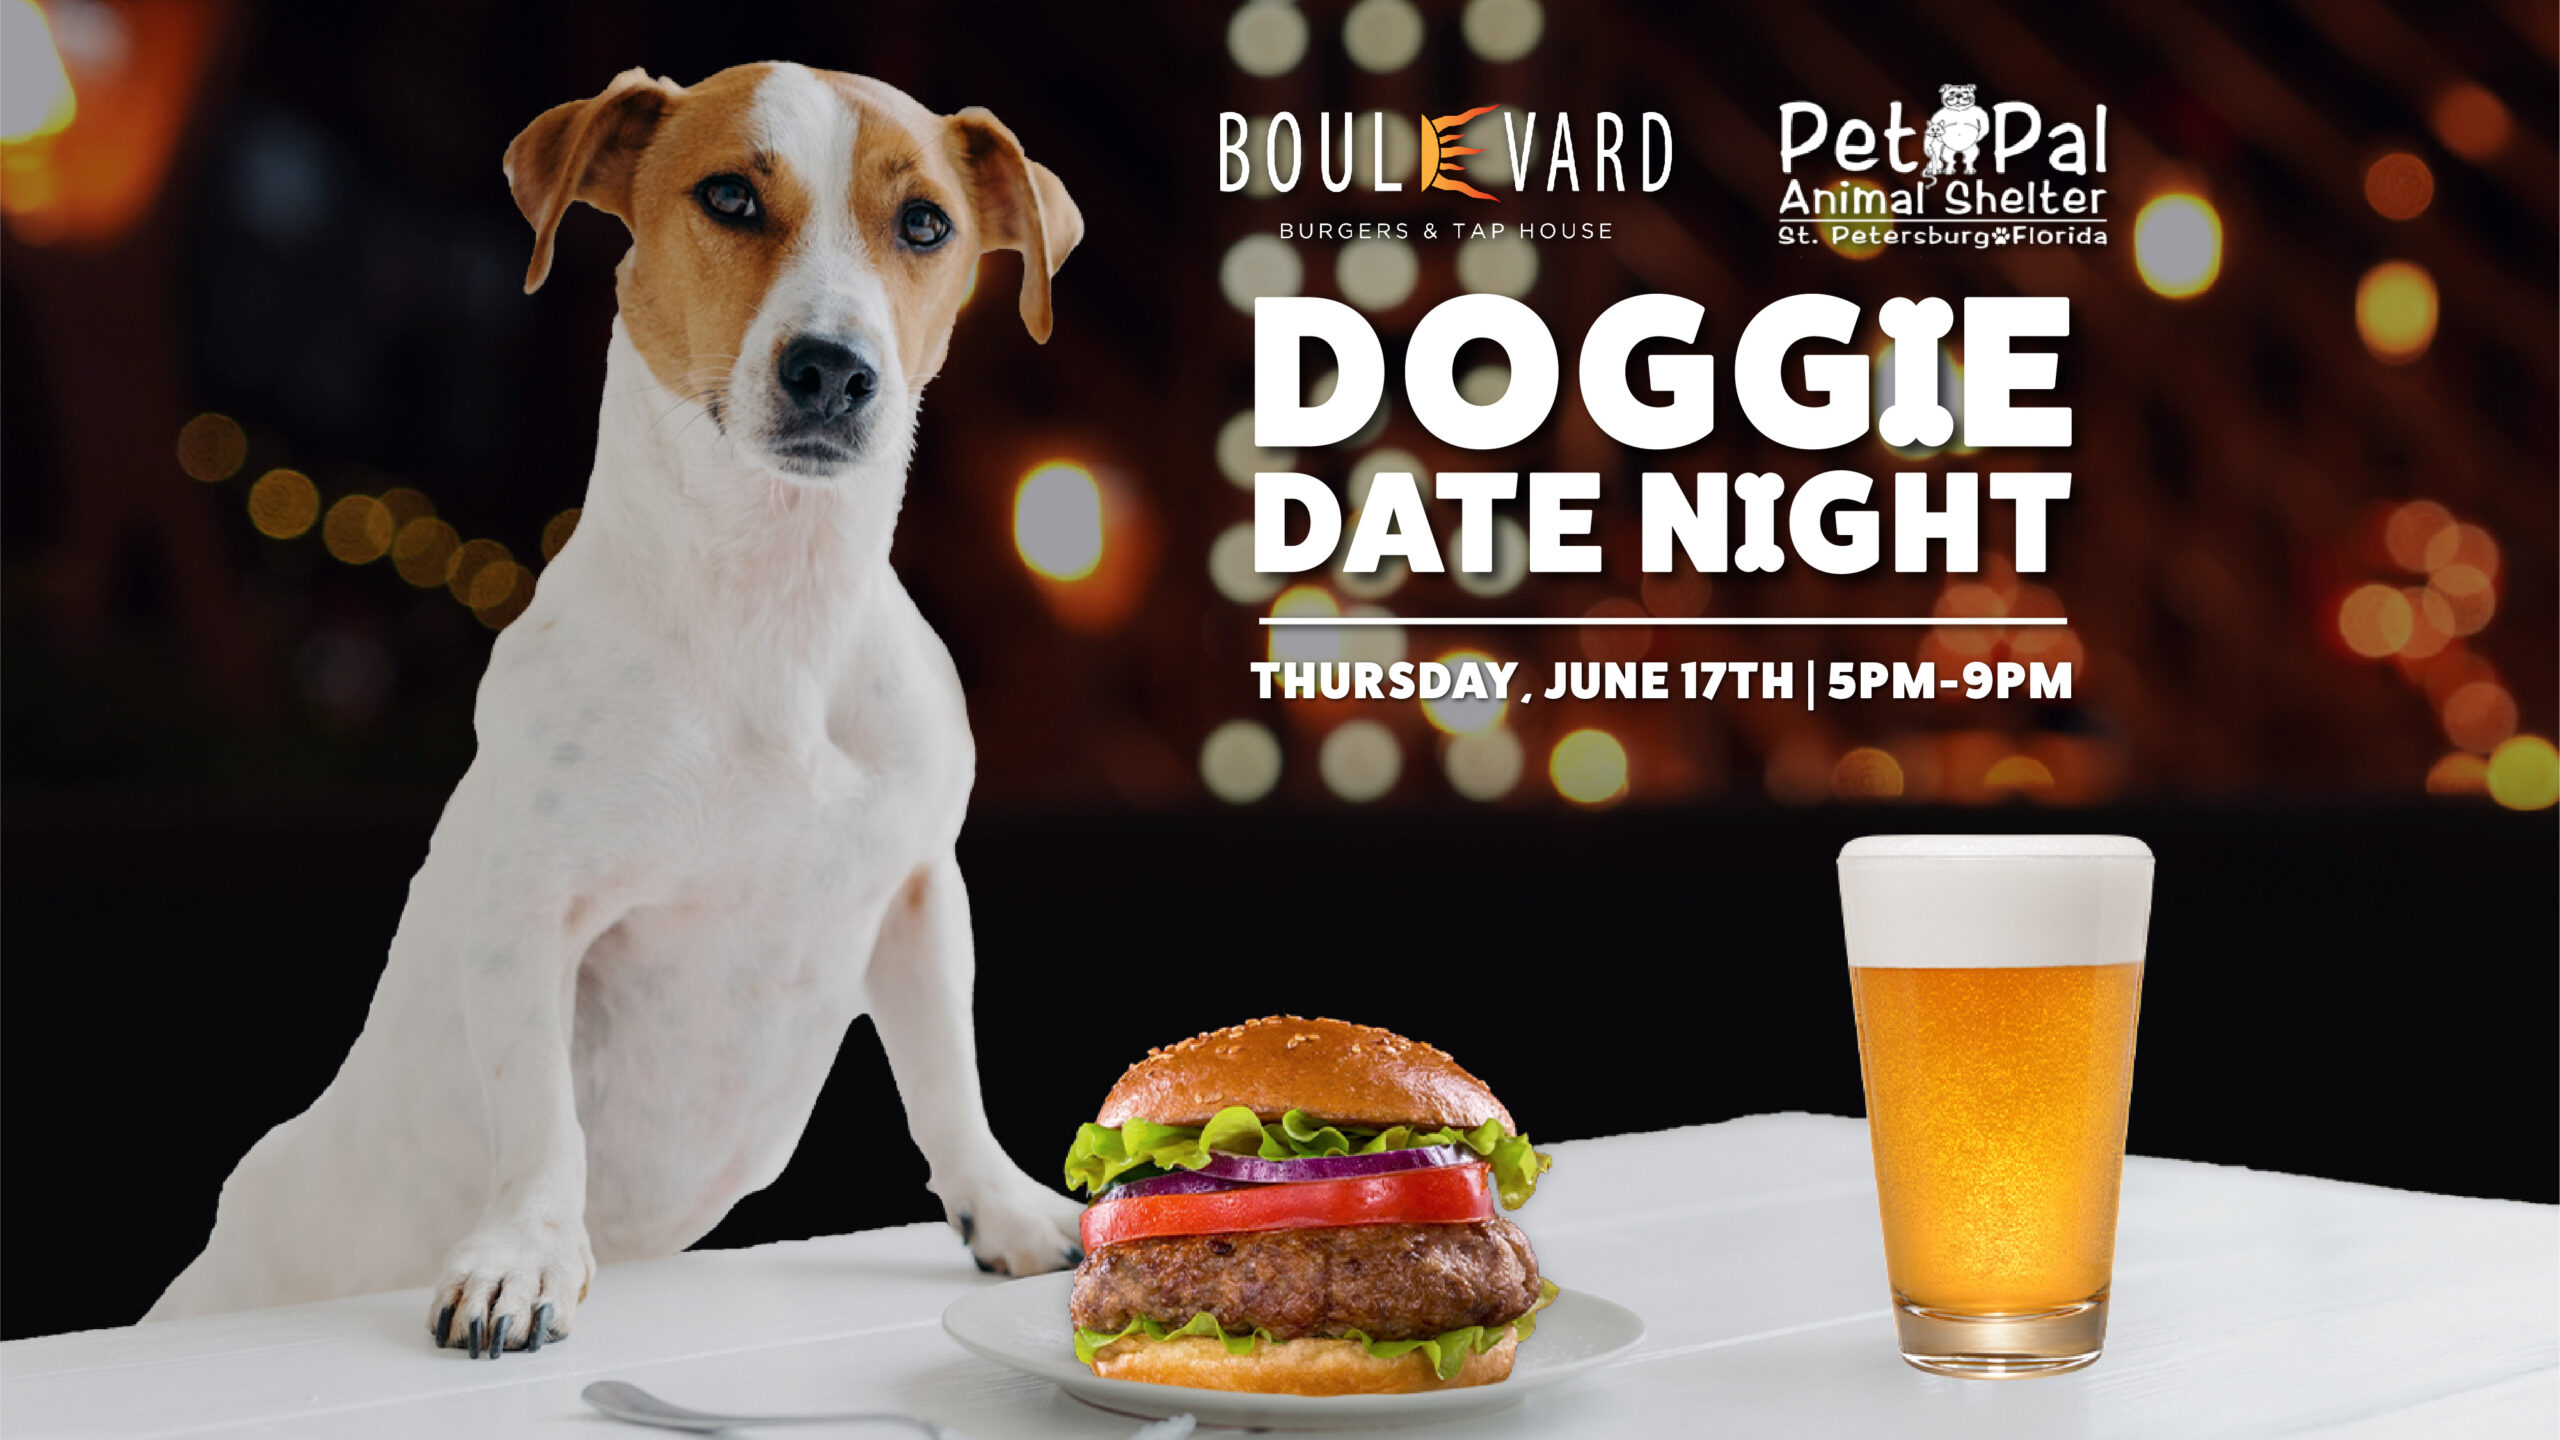 """St. Pete Beach Restaurant Partners with Pet Pal Animal Shelter for """"Doggie Date Night"""""""